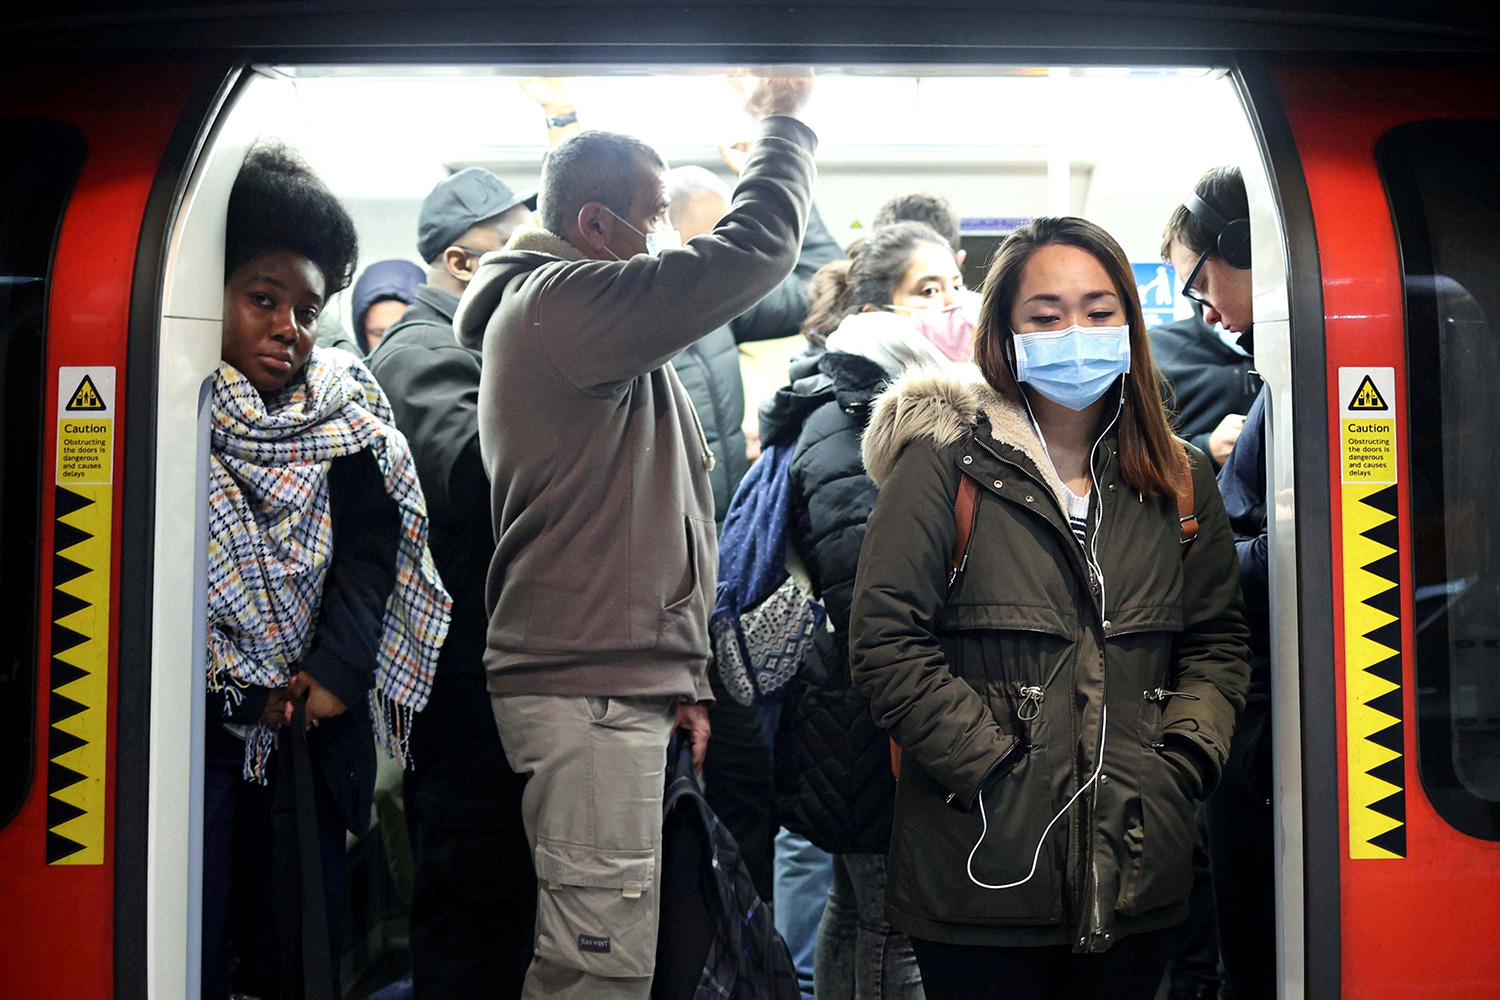 The photo shows the open door of the subway train crowded with commuters, some of whom are not wearing masks.